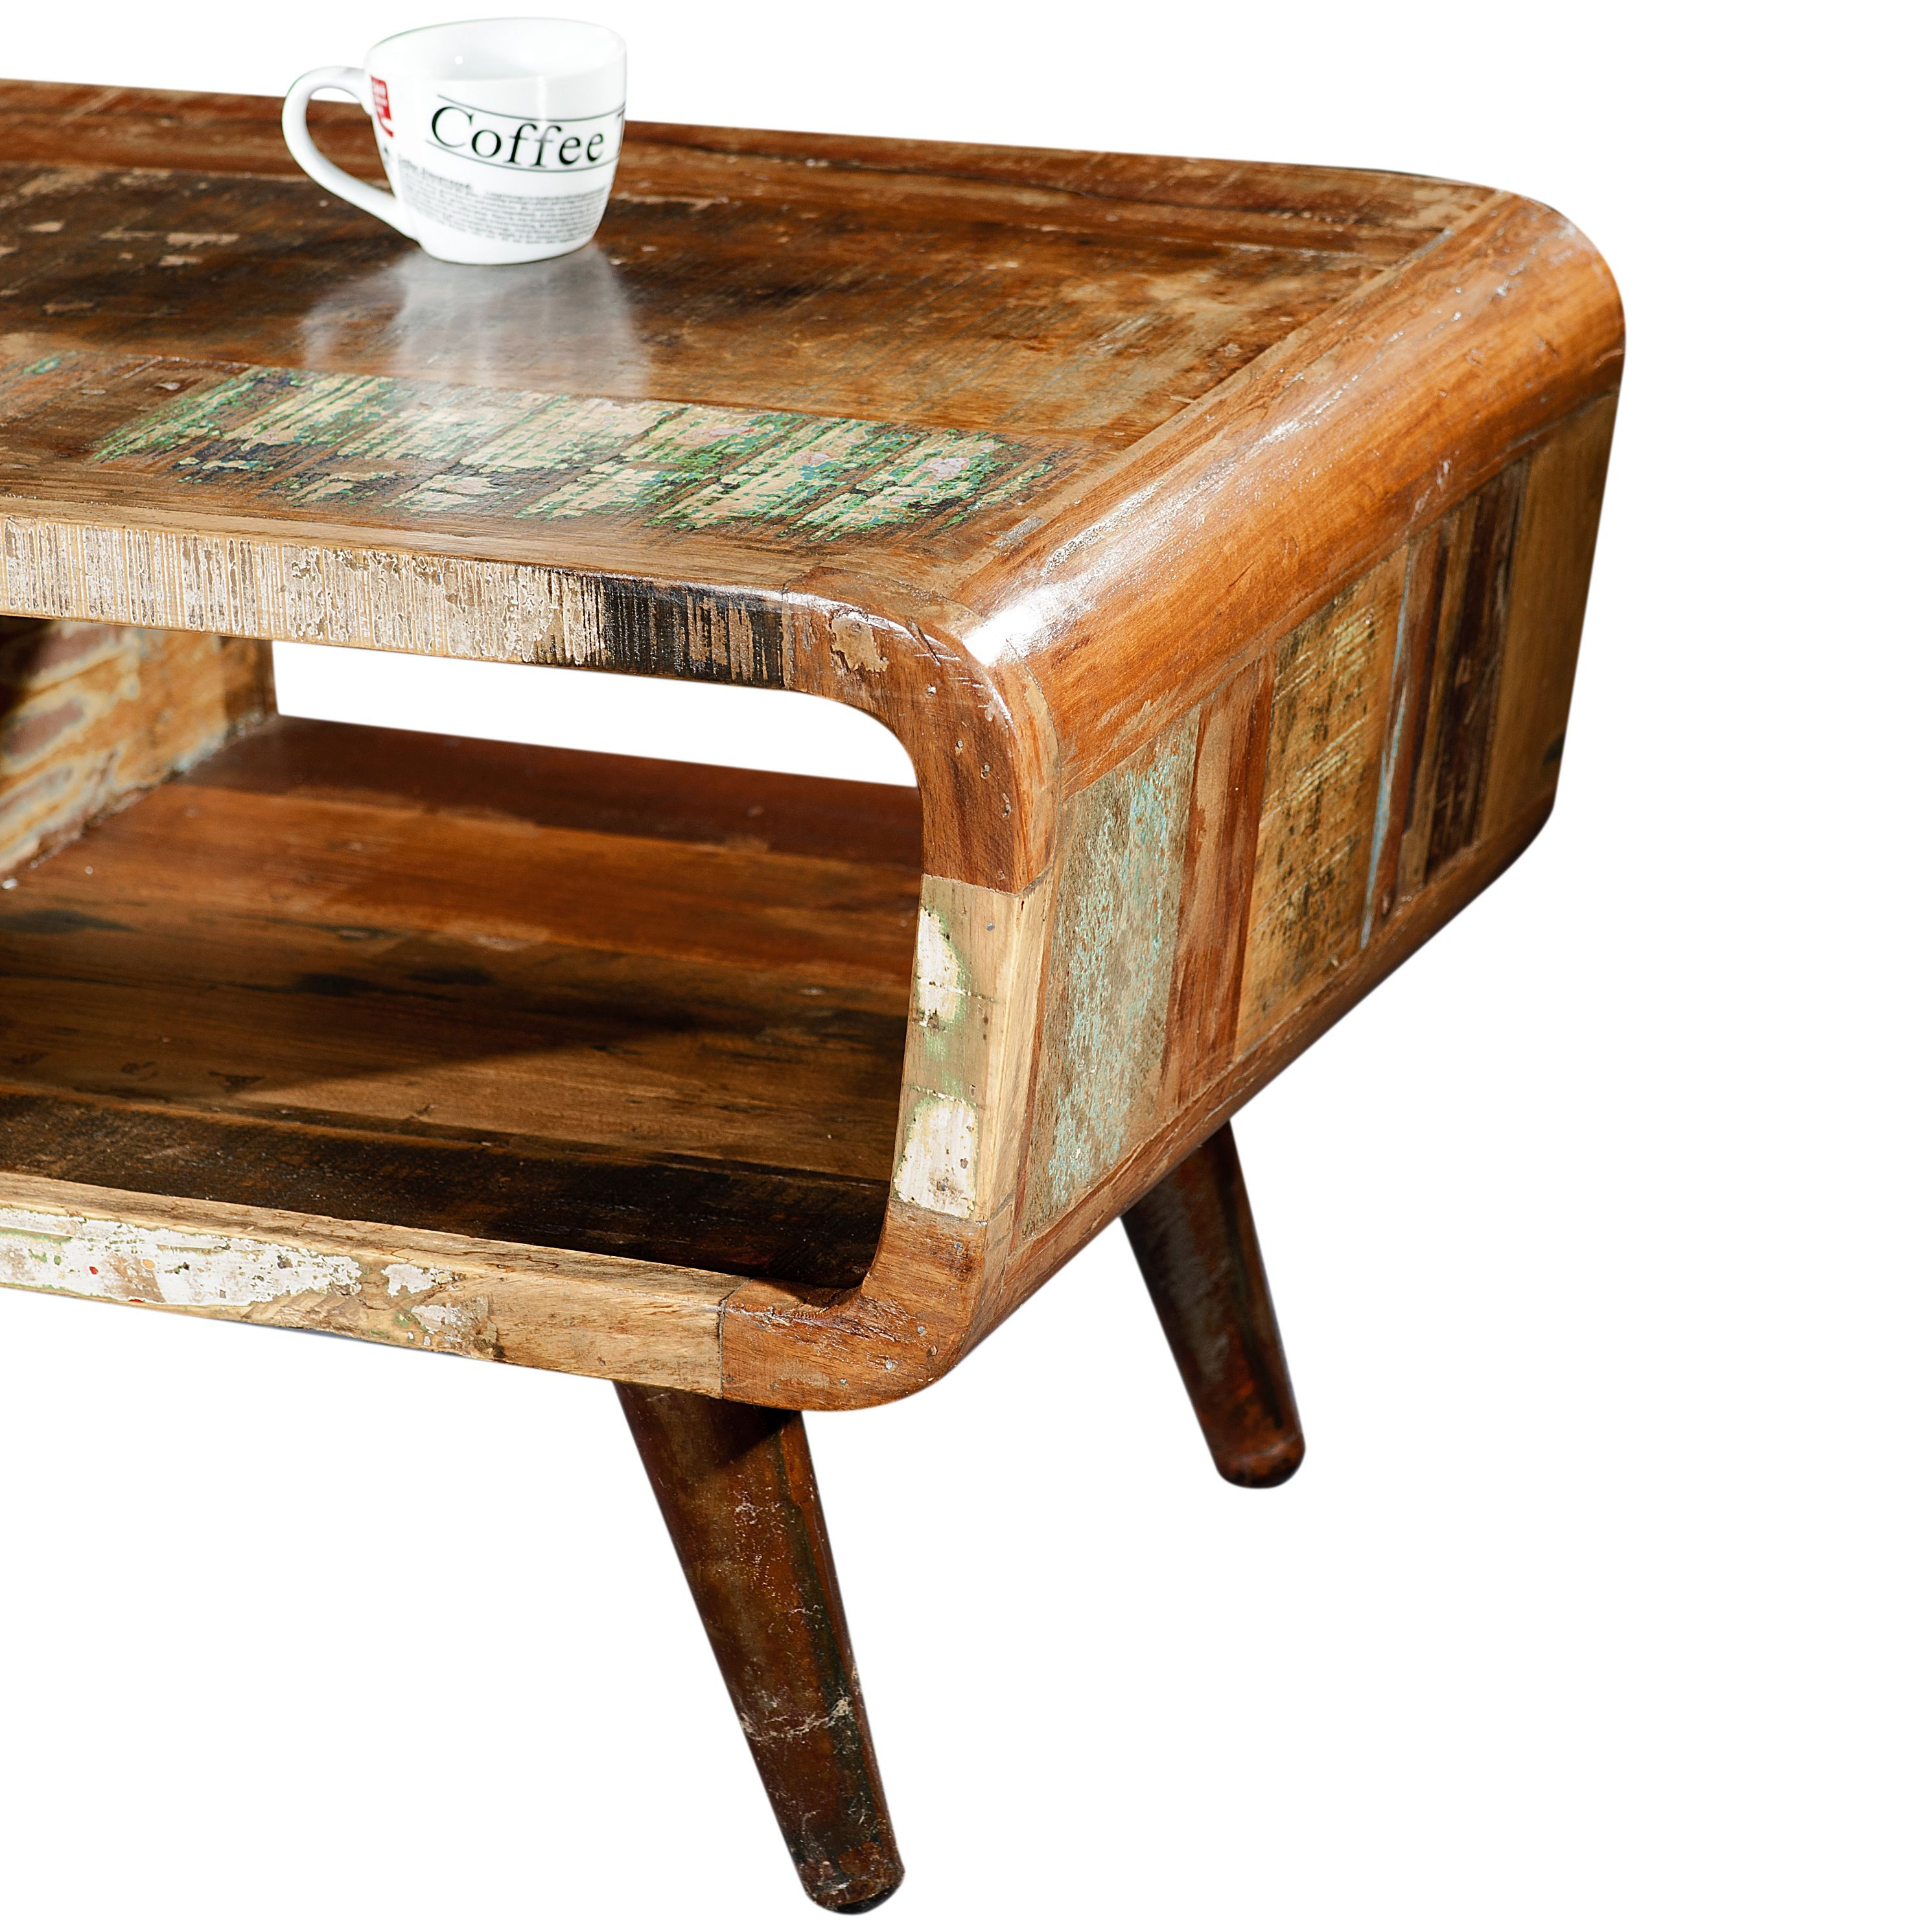 Porter route reclaimed midcentury modern coffee table with